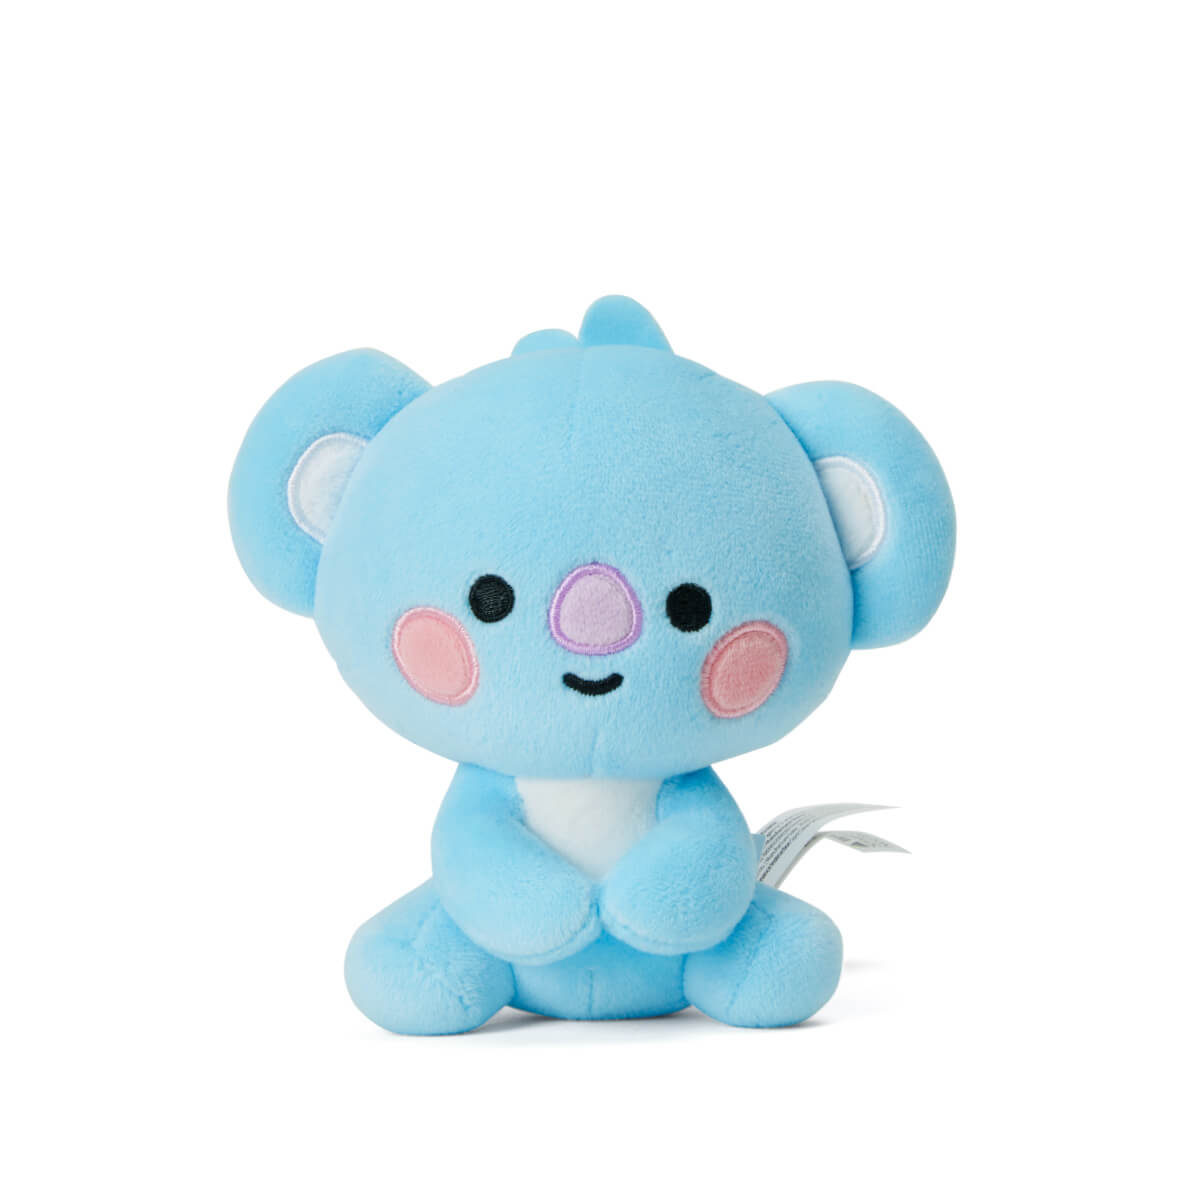 BT21 KOYA Baby Sitting Doll 4.7""